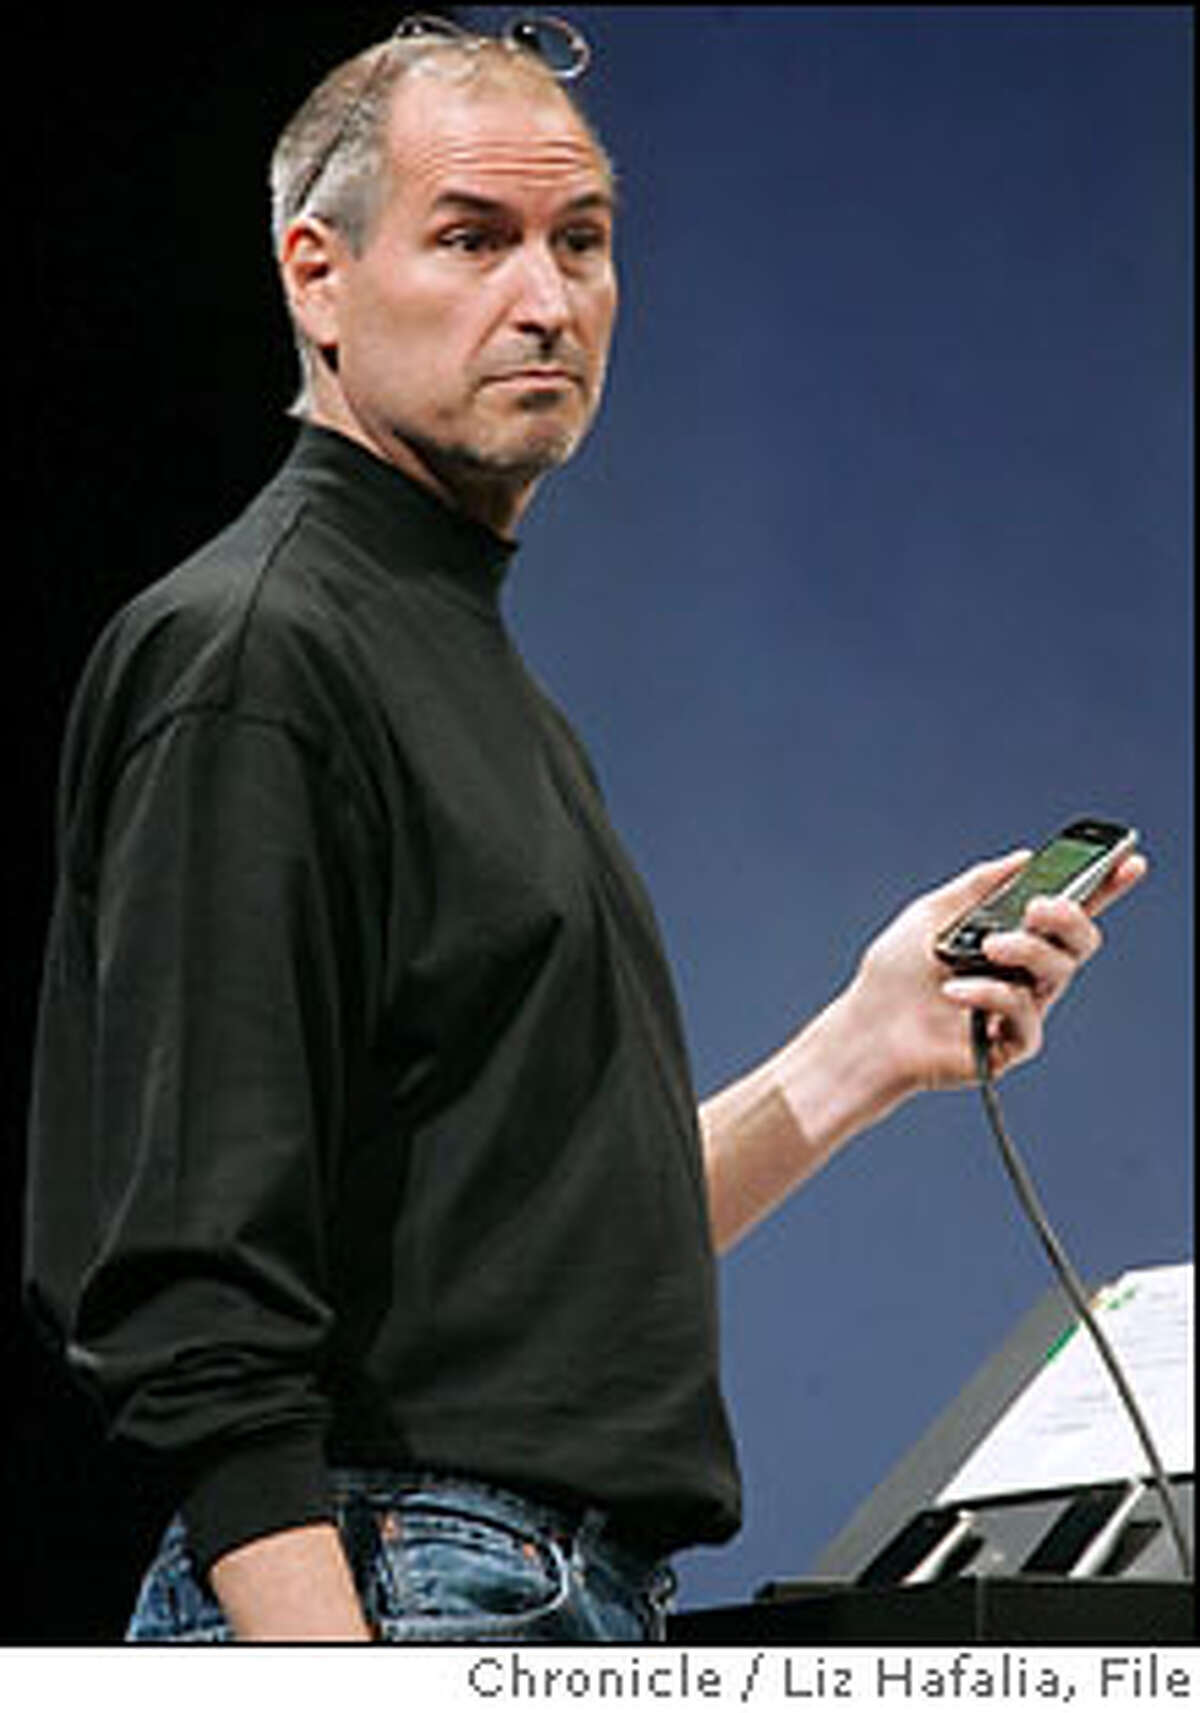 APPLE10_137_LH.JPG Steve Jobs introduces IPhone at the Apple MacWorld keynote address in Moscone West. Photographed by Liz Hafalia Ran on: 01-10-2007 Steve Jobs uses an iPhone during his speech at Macworld Expo. Ran on: 03-25-2007 Steve Jobs, here using an iPhone, had options dated just before the iPod announcement.